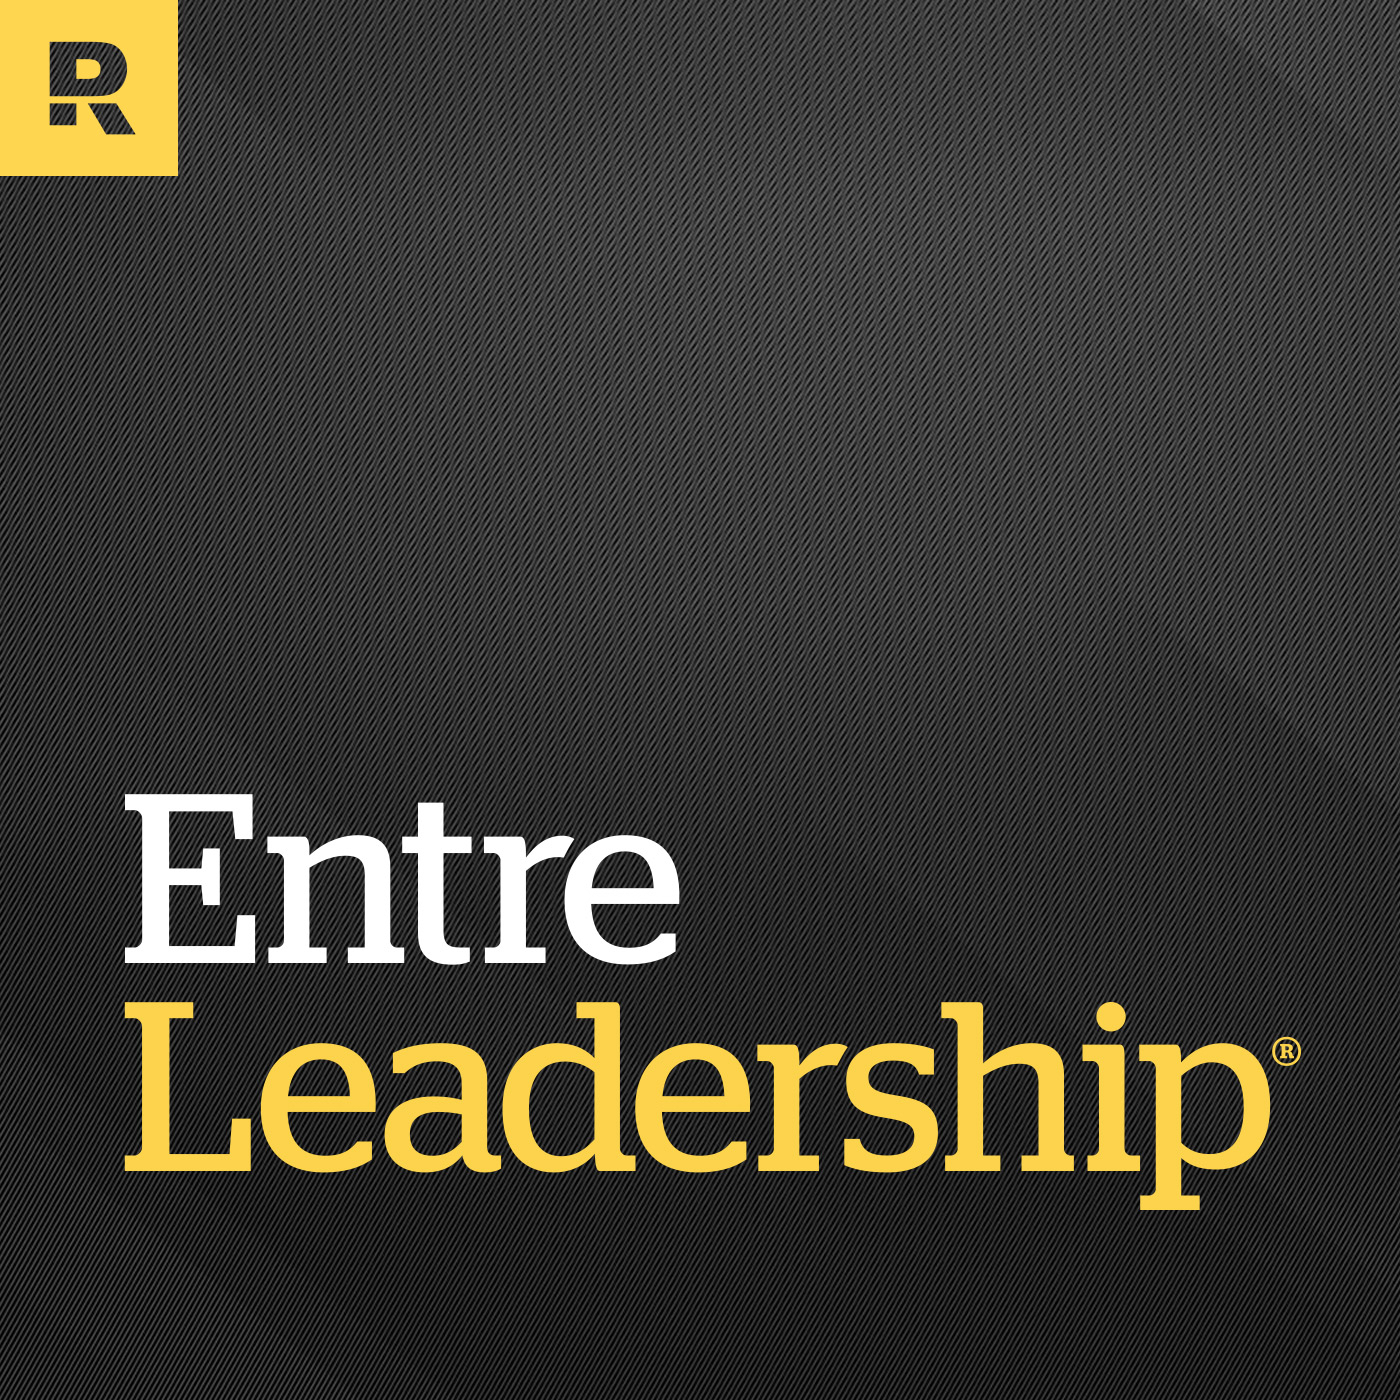 find your dream job insider tips for finding work advancing your 12 the entreleadership podcast